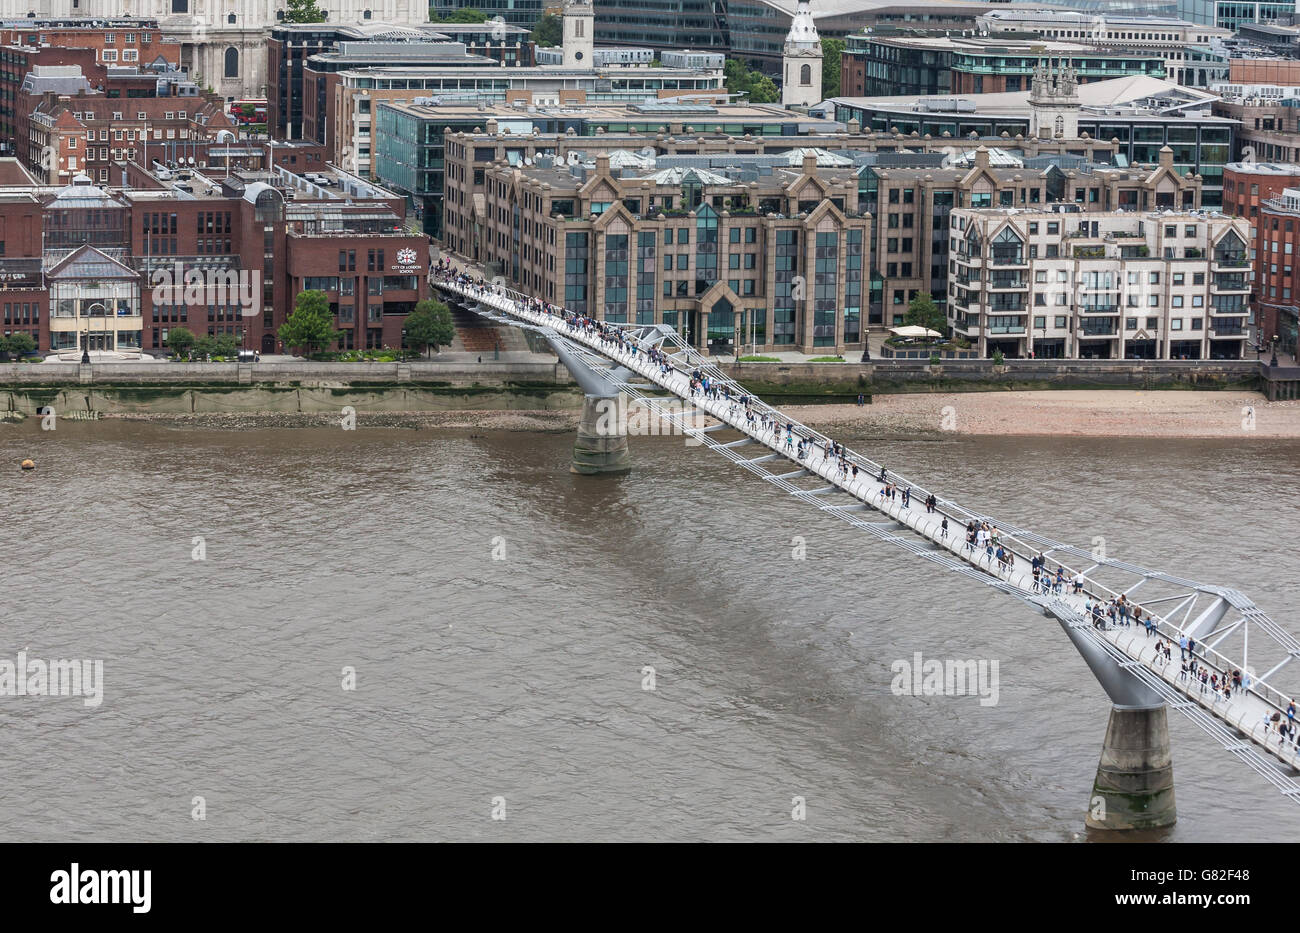 Millennium Bridge over River Thames London, UK - Stock Image